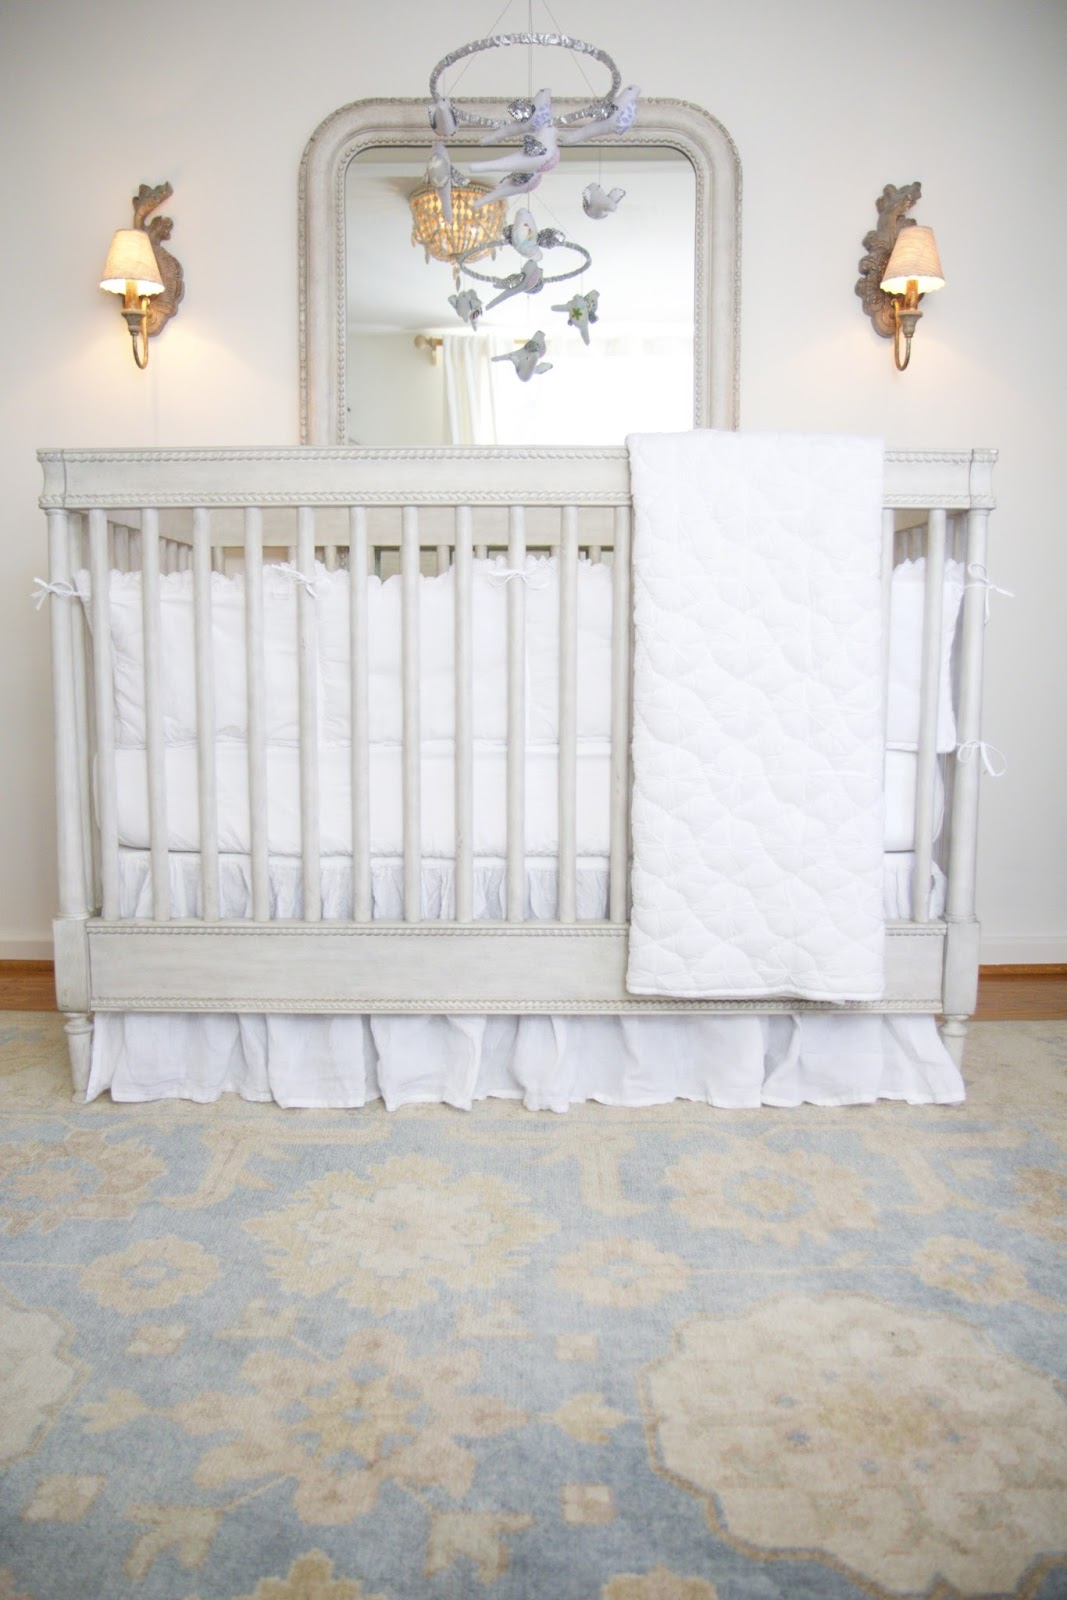 Natart Crib Reviews | Greenguard Baby Furniture | Restoration Hardware Cribs